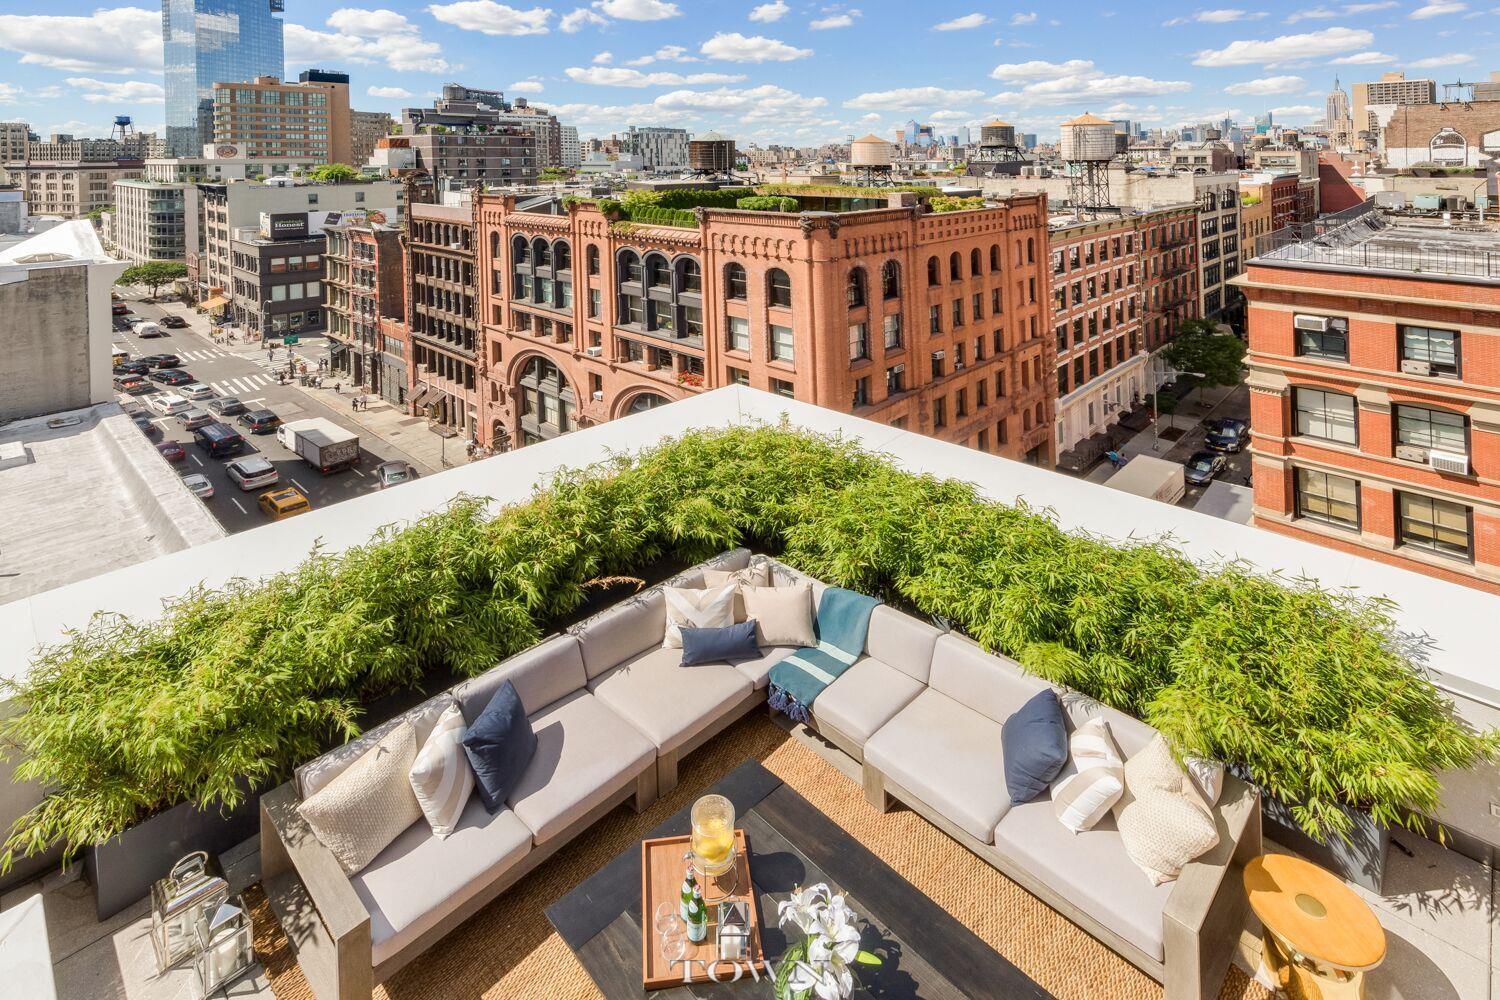 Condominium for Sale at 52 Wooster Street, #ph 52 Wooster Street New York, New York 10013 United States